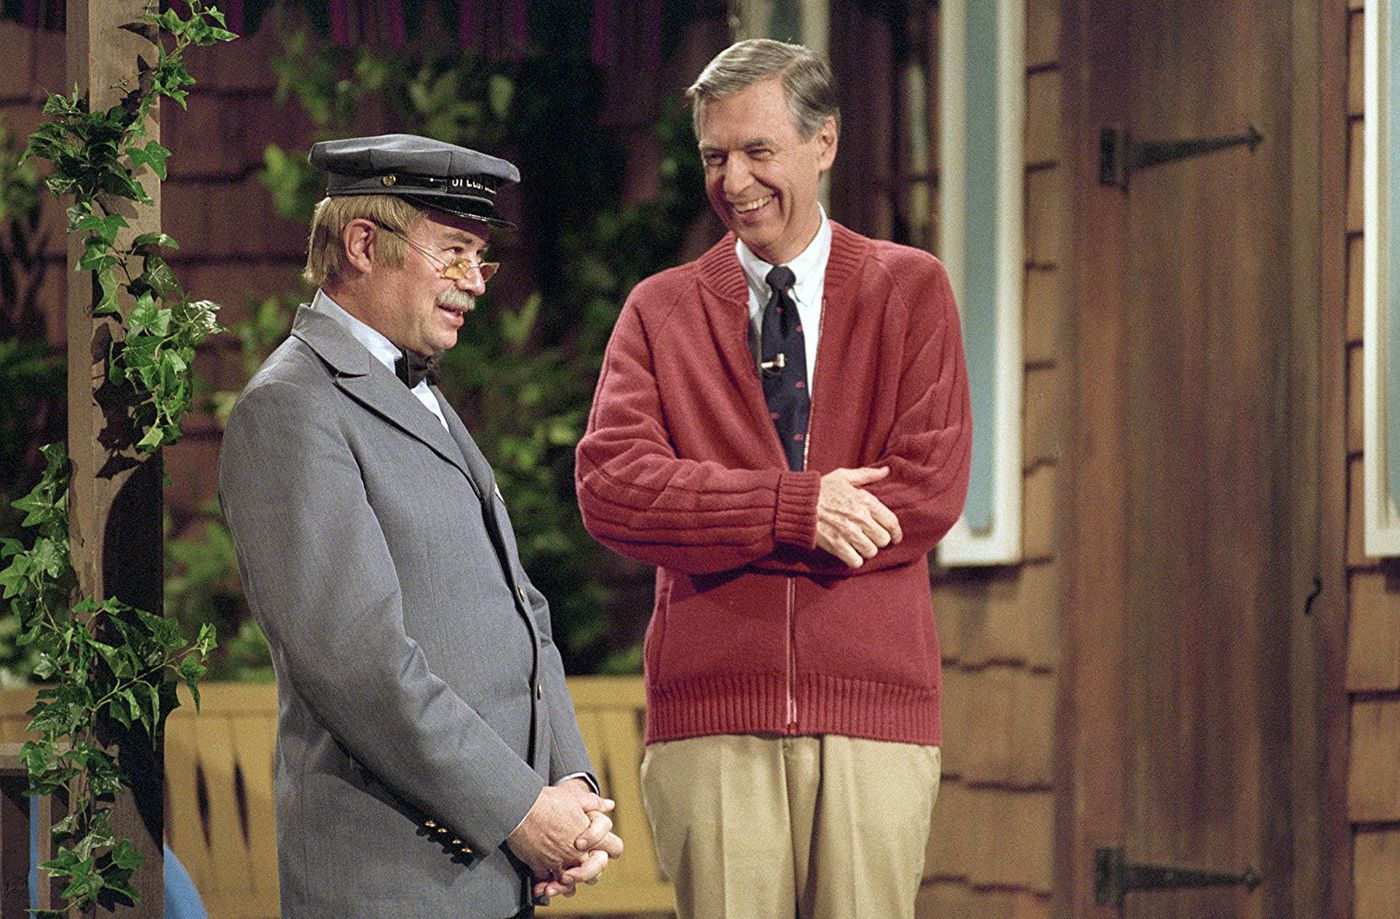 Won't You Be My Neighbor review: a subversive Fred Rogers